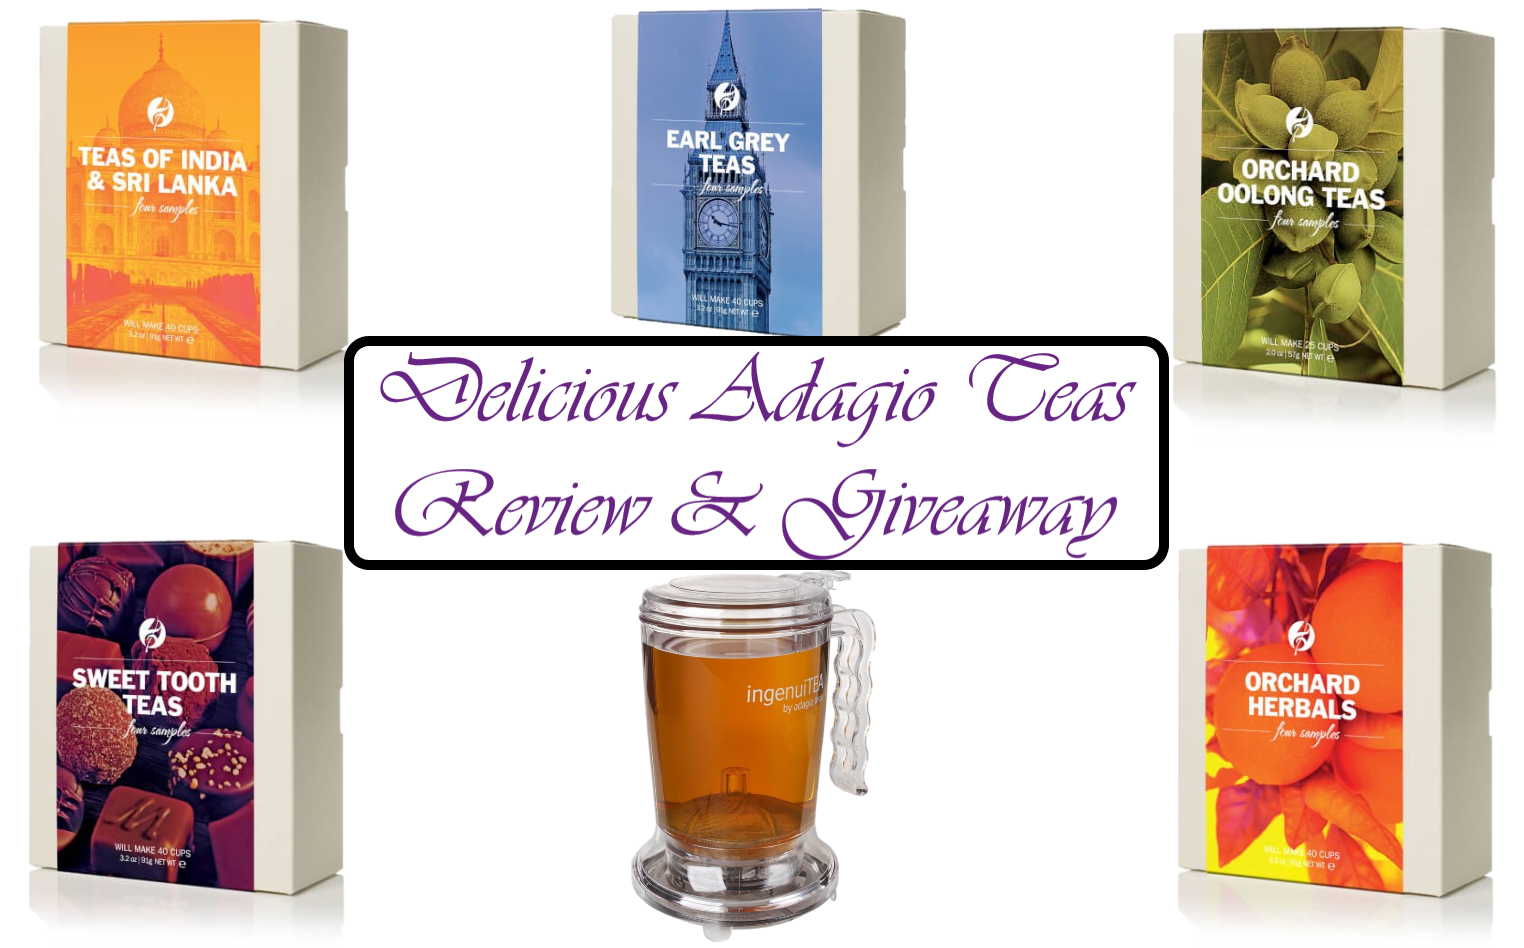 Delicious Adagio Teas Review & Giveaway